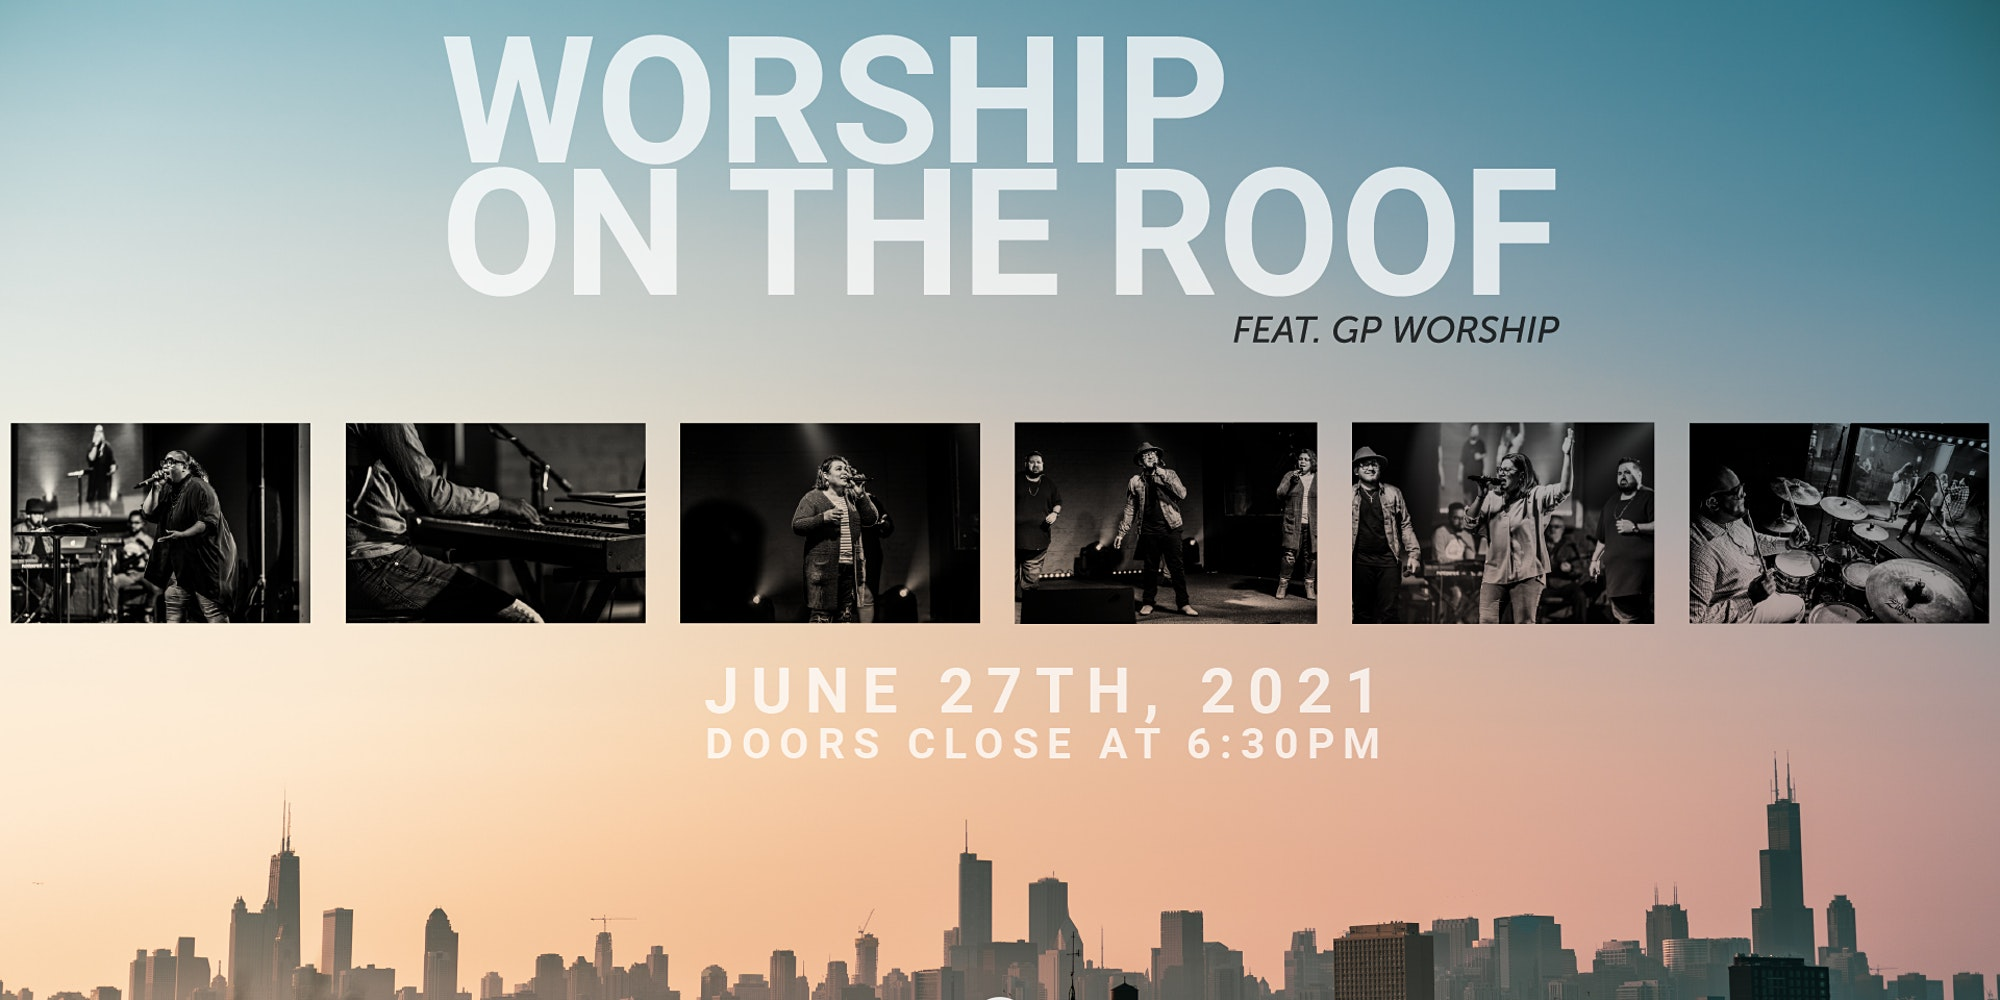 Worship on the Roof